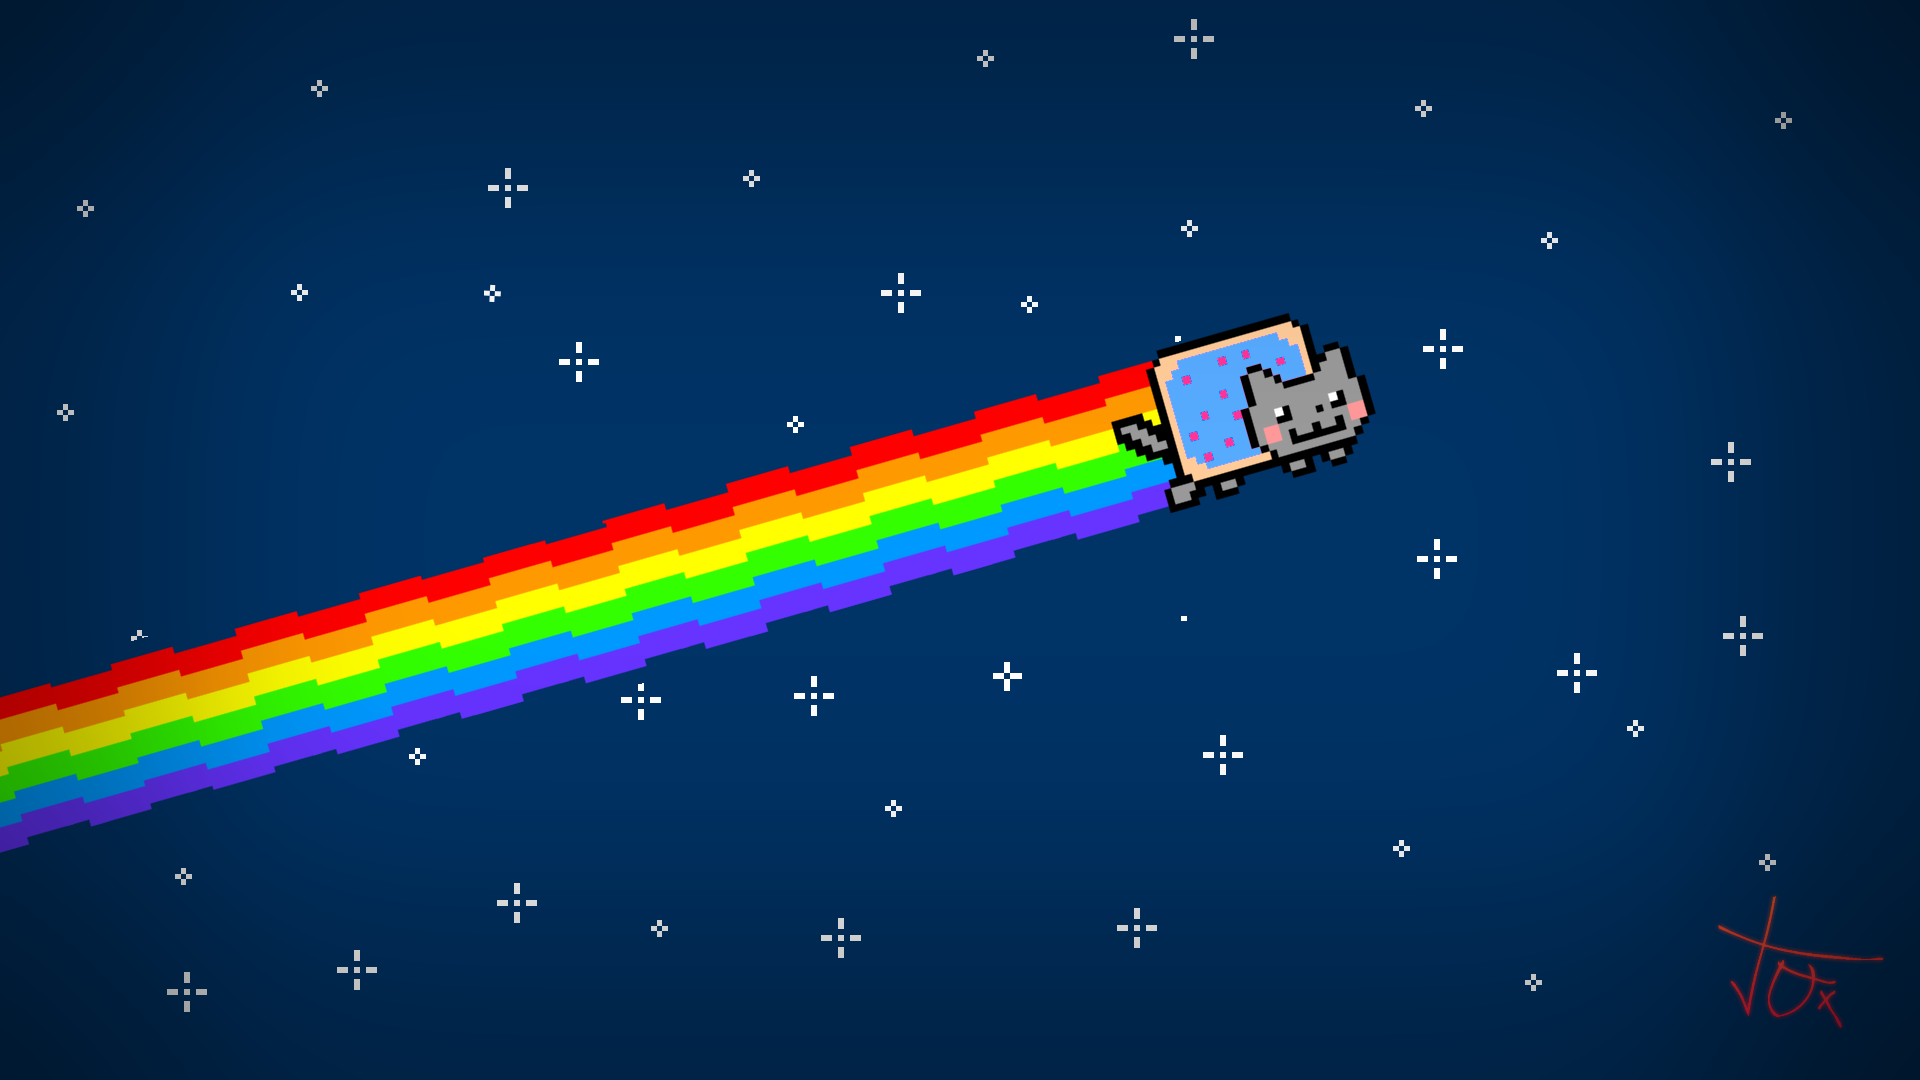 hd Wallpapers 1920x1080 Cat Blue Nyan Cat hd Wallpaper 1920x1080